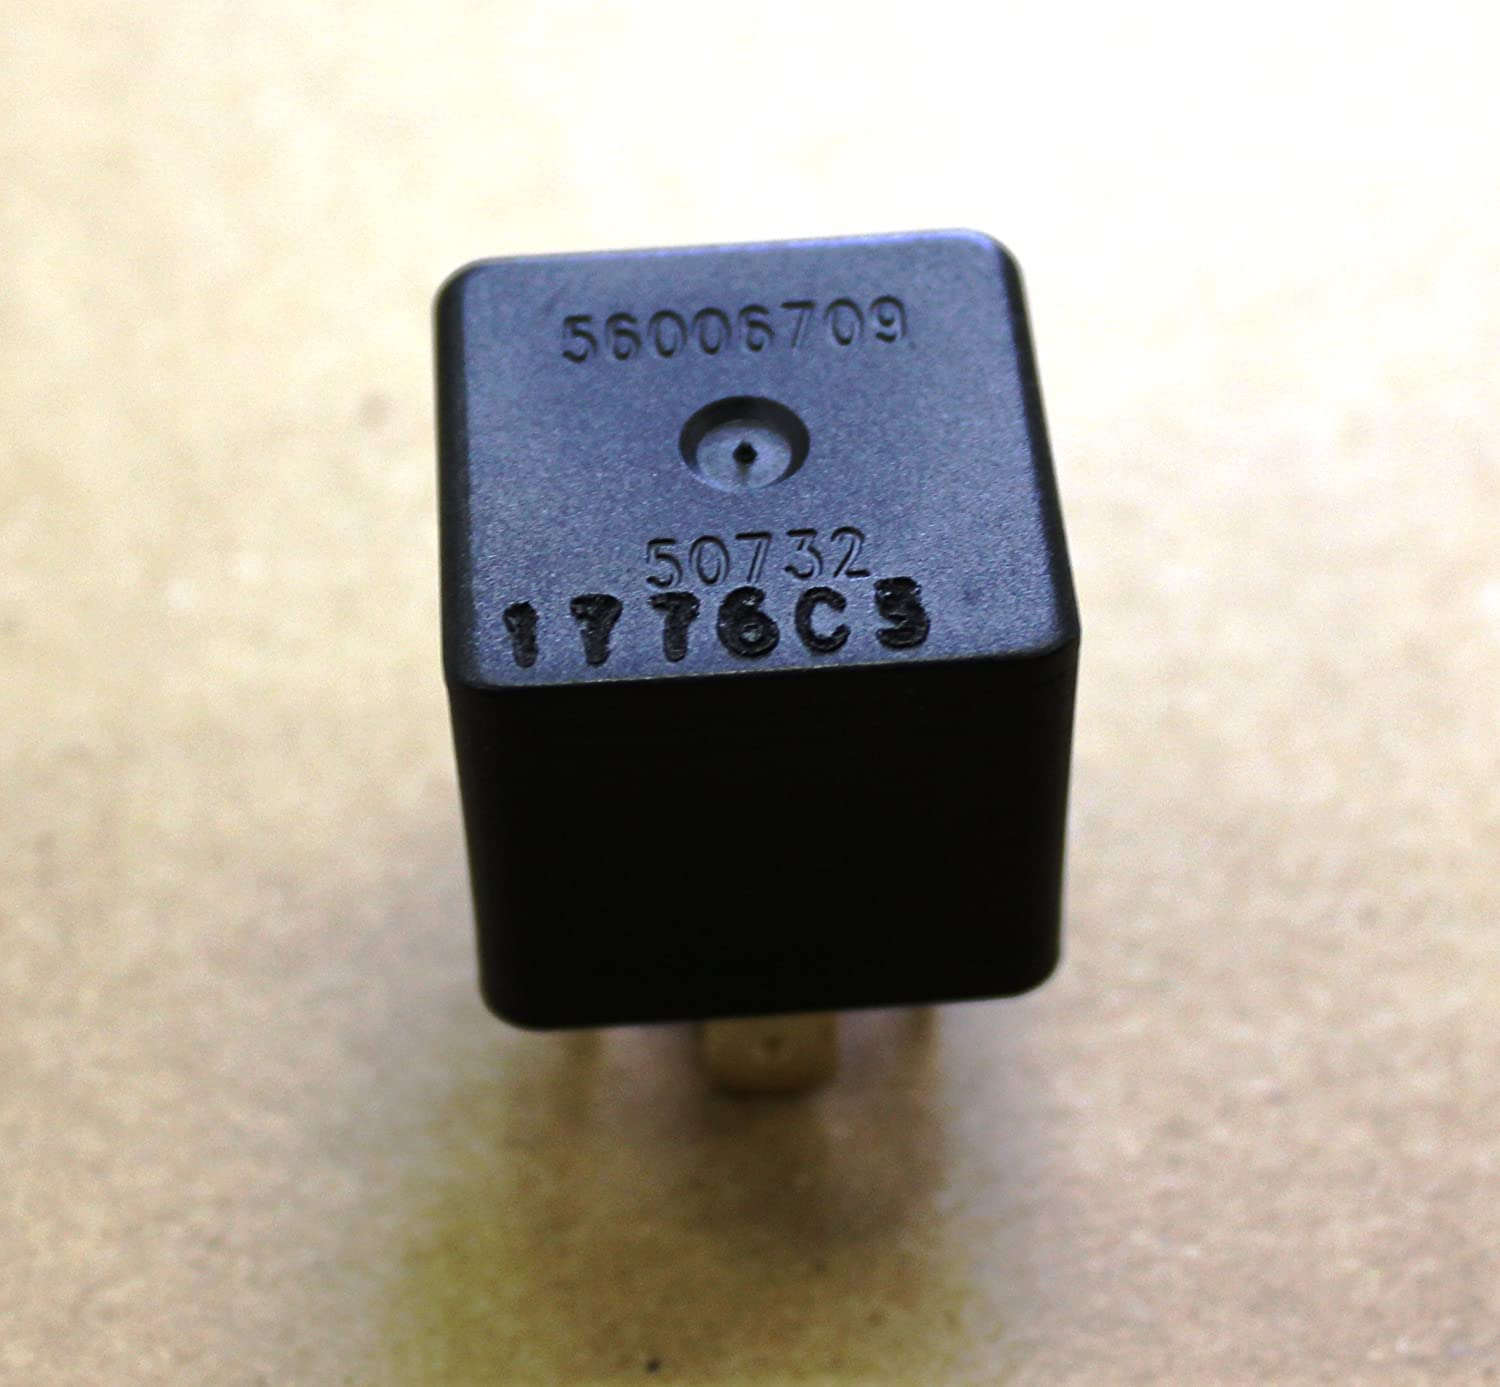 Used Dodge Chrysler Spdt 12 Volt Relay 56006709 As Shown With Remote Automotive